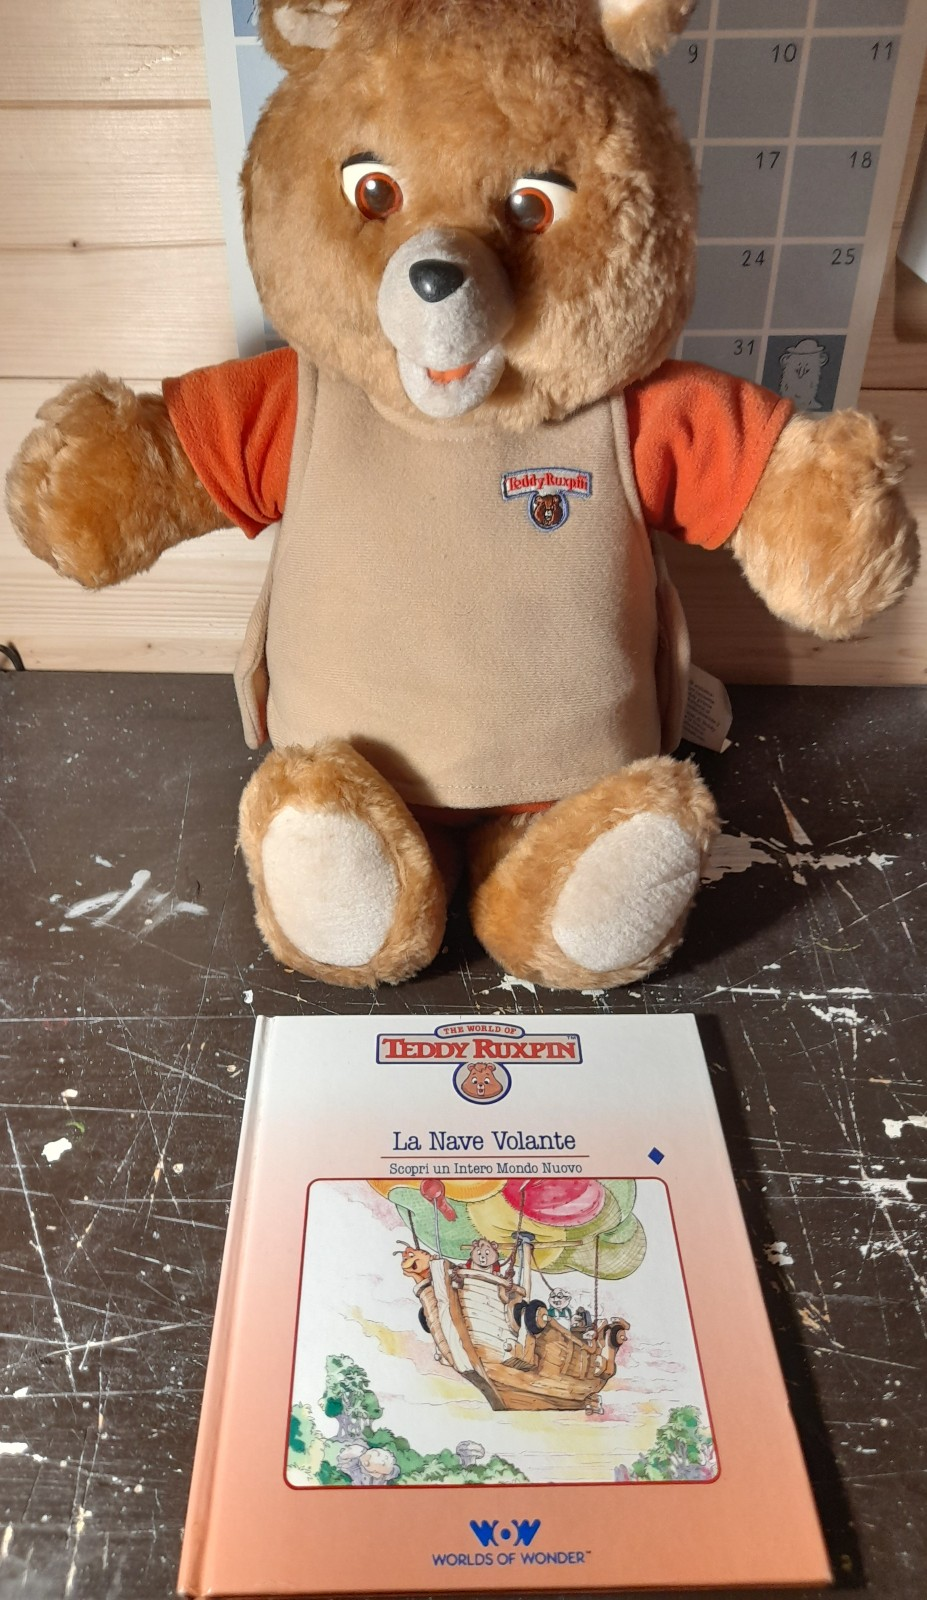 TEDDY RUXPIN ANNO 1985 WOW WORLDS OF WONDERS 20210710